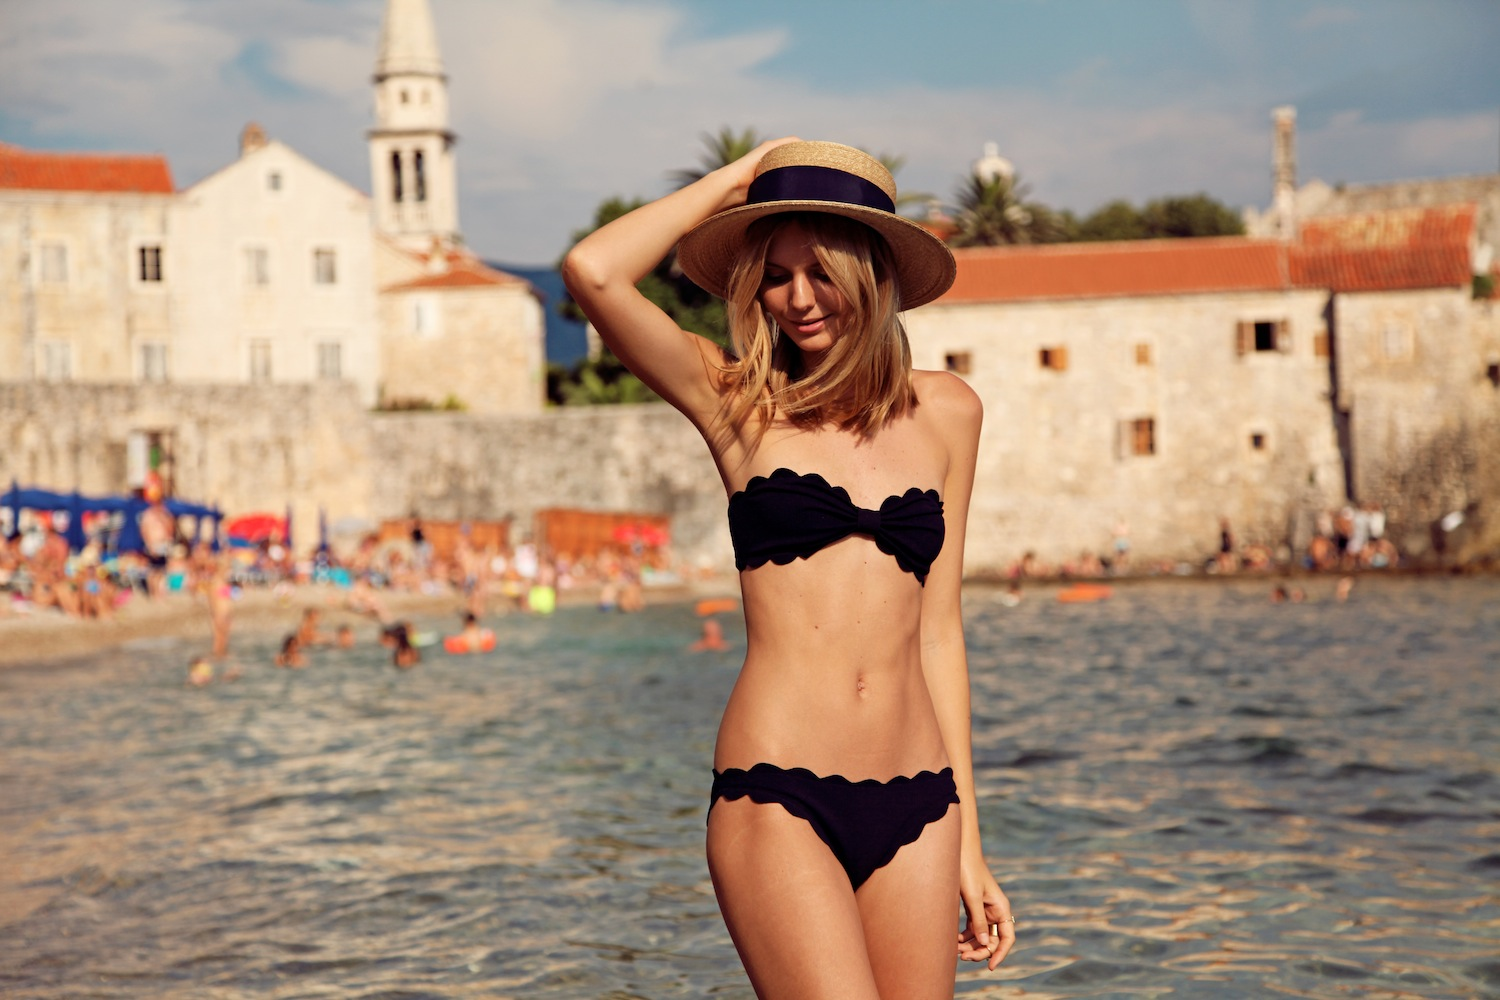 e829273abfc Now Is The Best Time To Stock Up On Bathing Suits - BellaVitaStyle